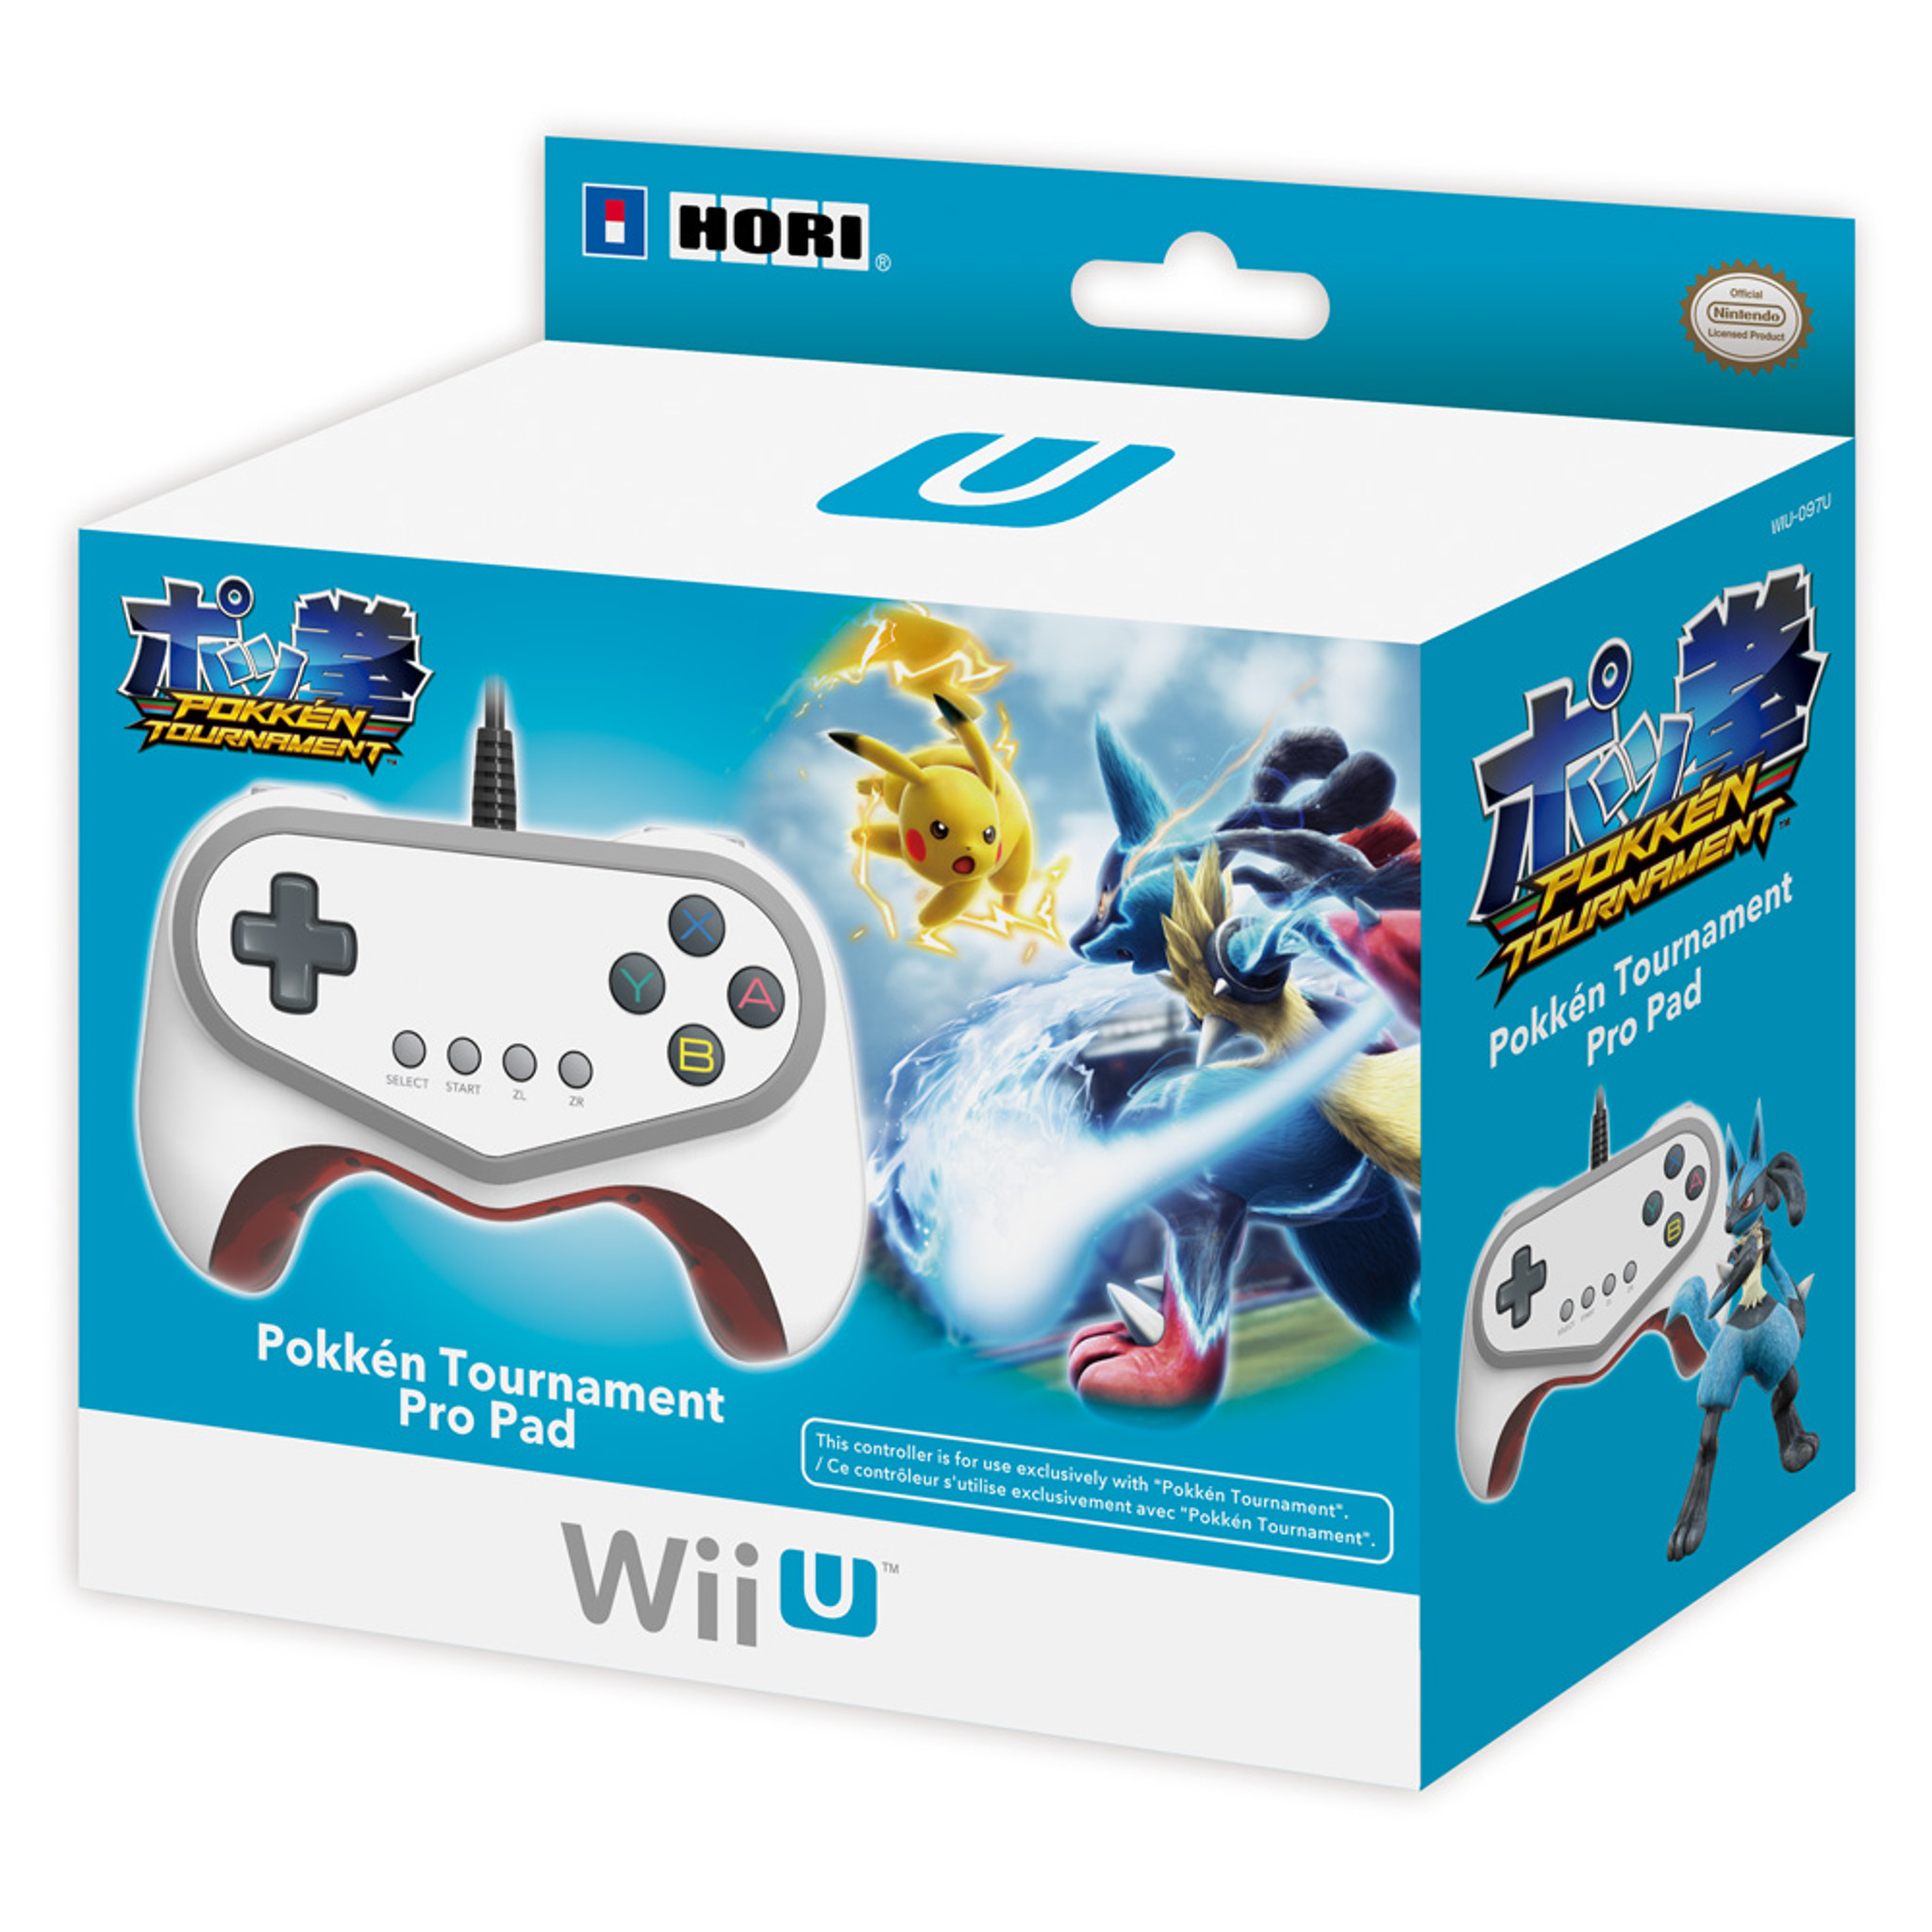 Pokken Tournament Pro Pad Limited Edition Controller for Nintendo Wii U